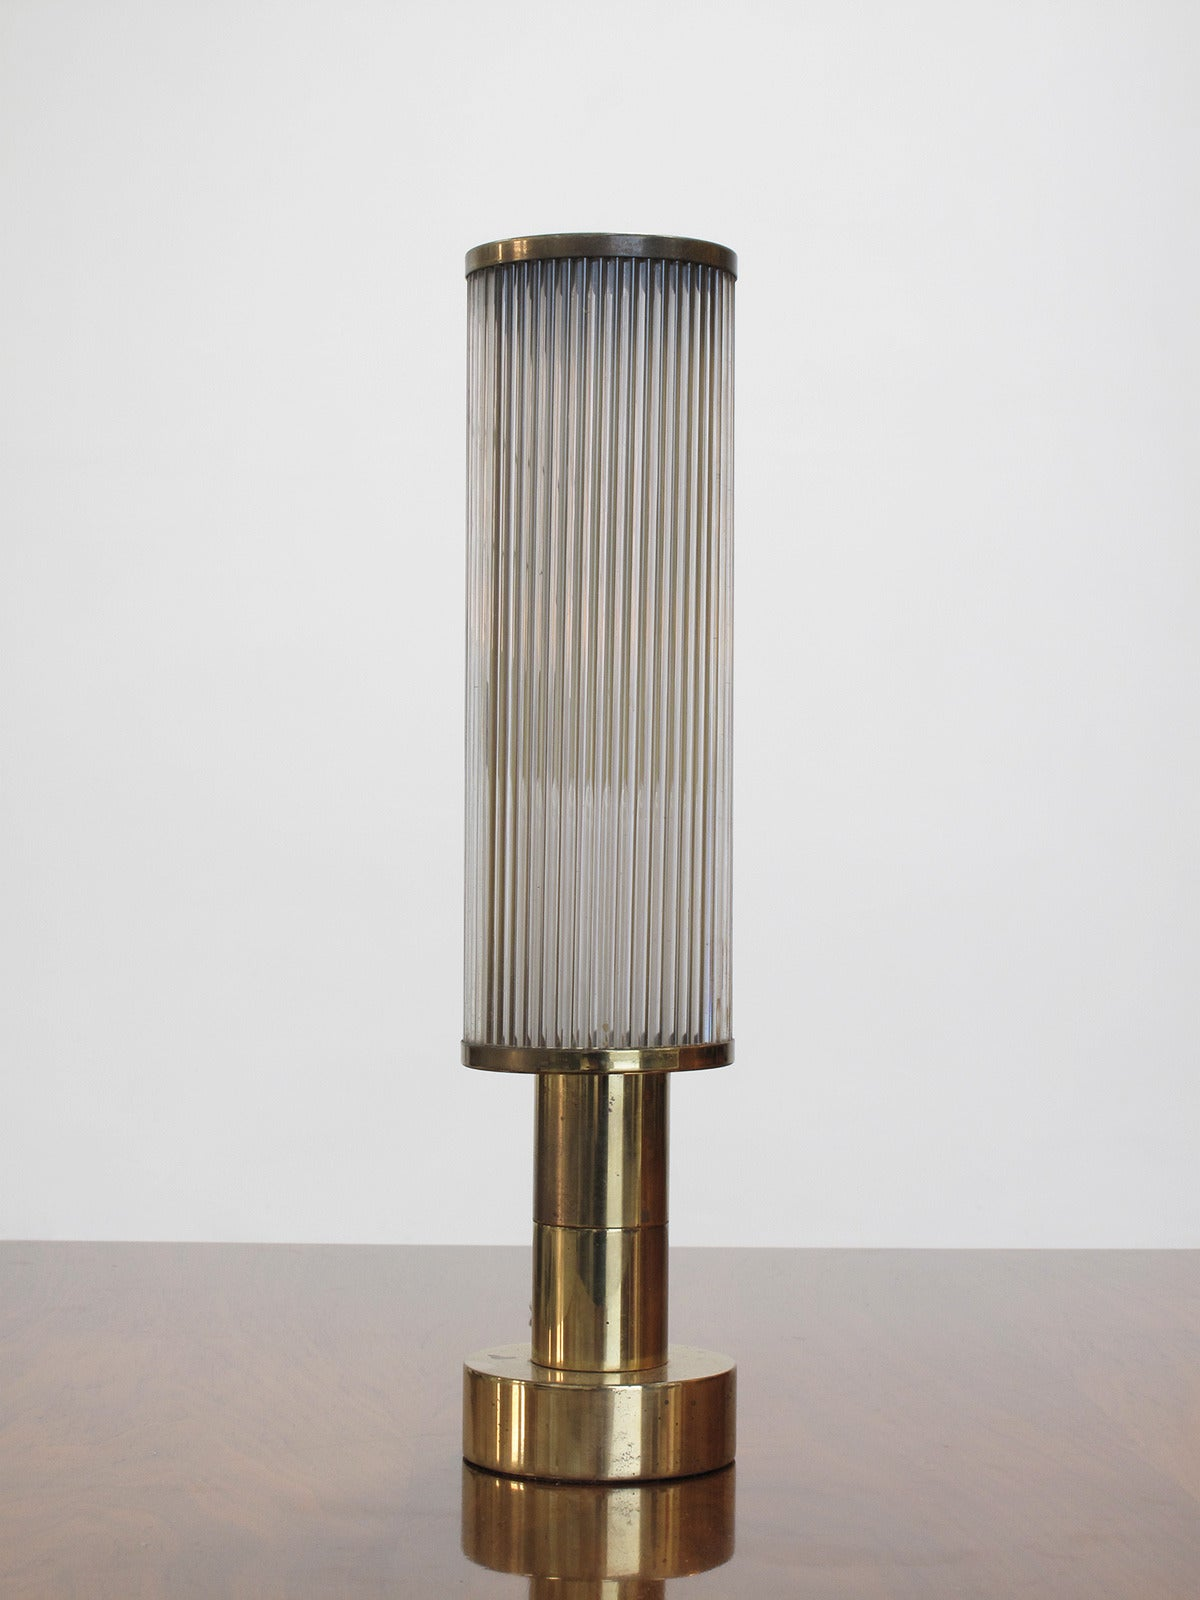 brass table lamp by casella lighting 1970s for sale at 1stdibs. Black Bedroom Furniture Sets. Home Design Ideas